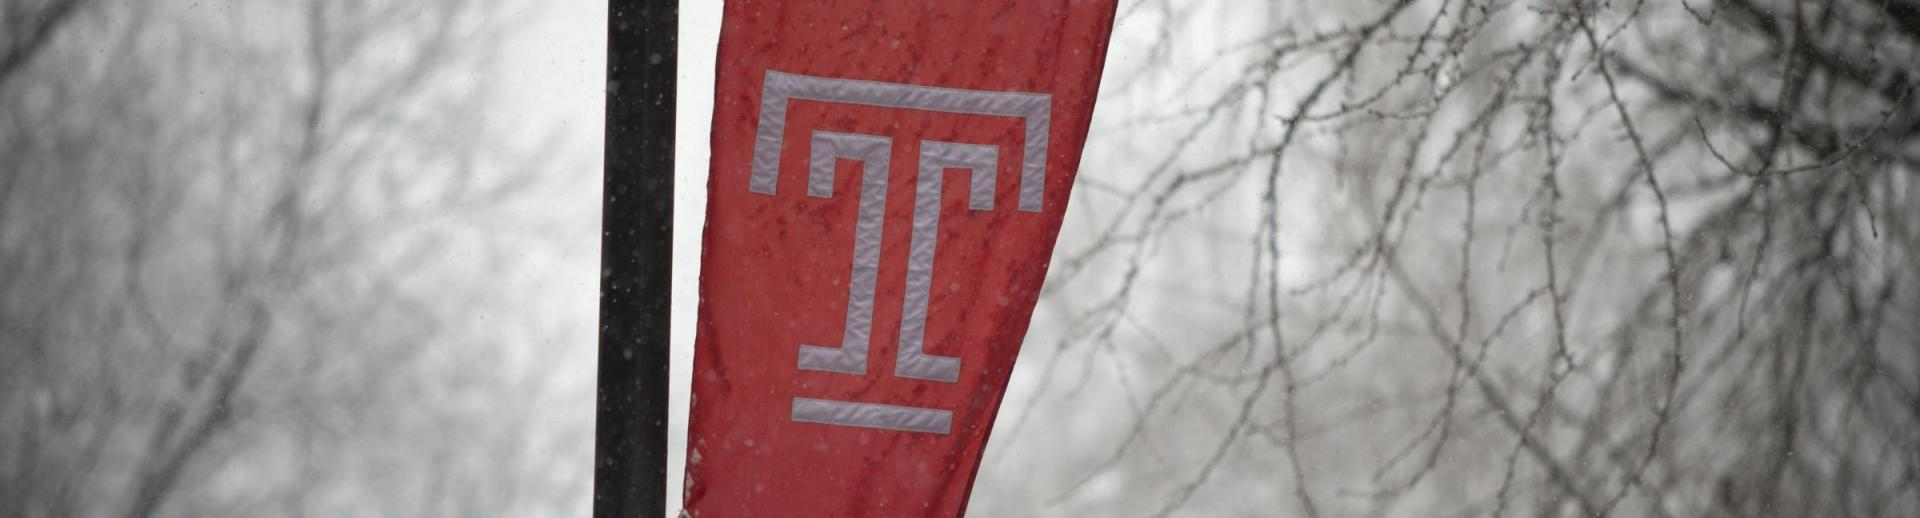 Temple Flag in Snow